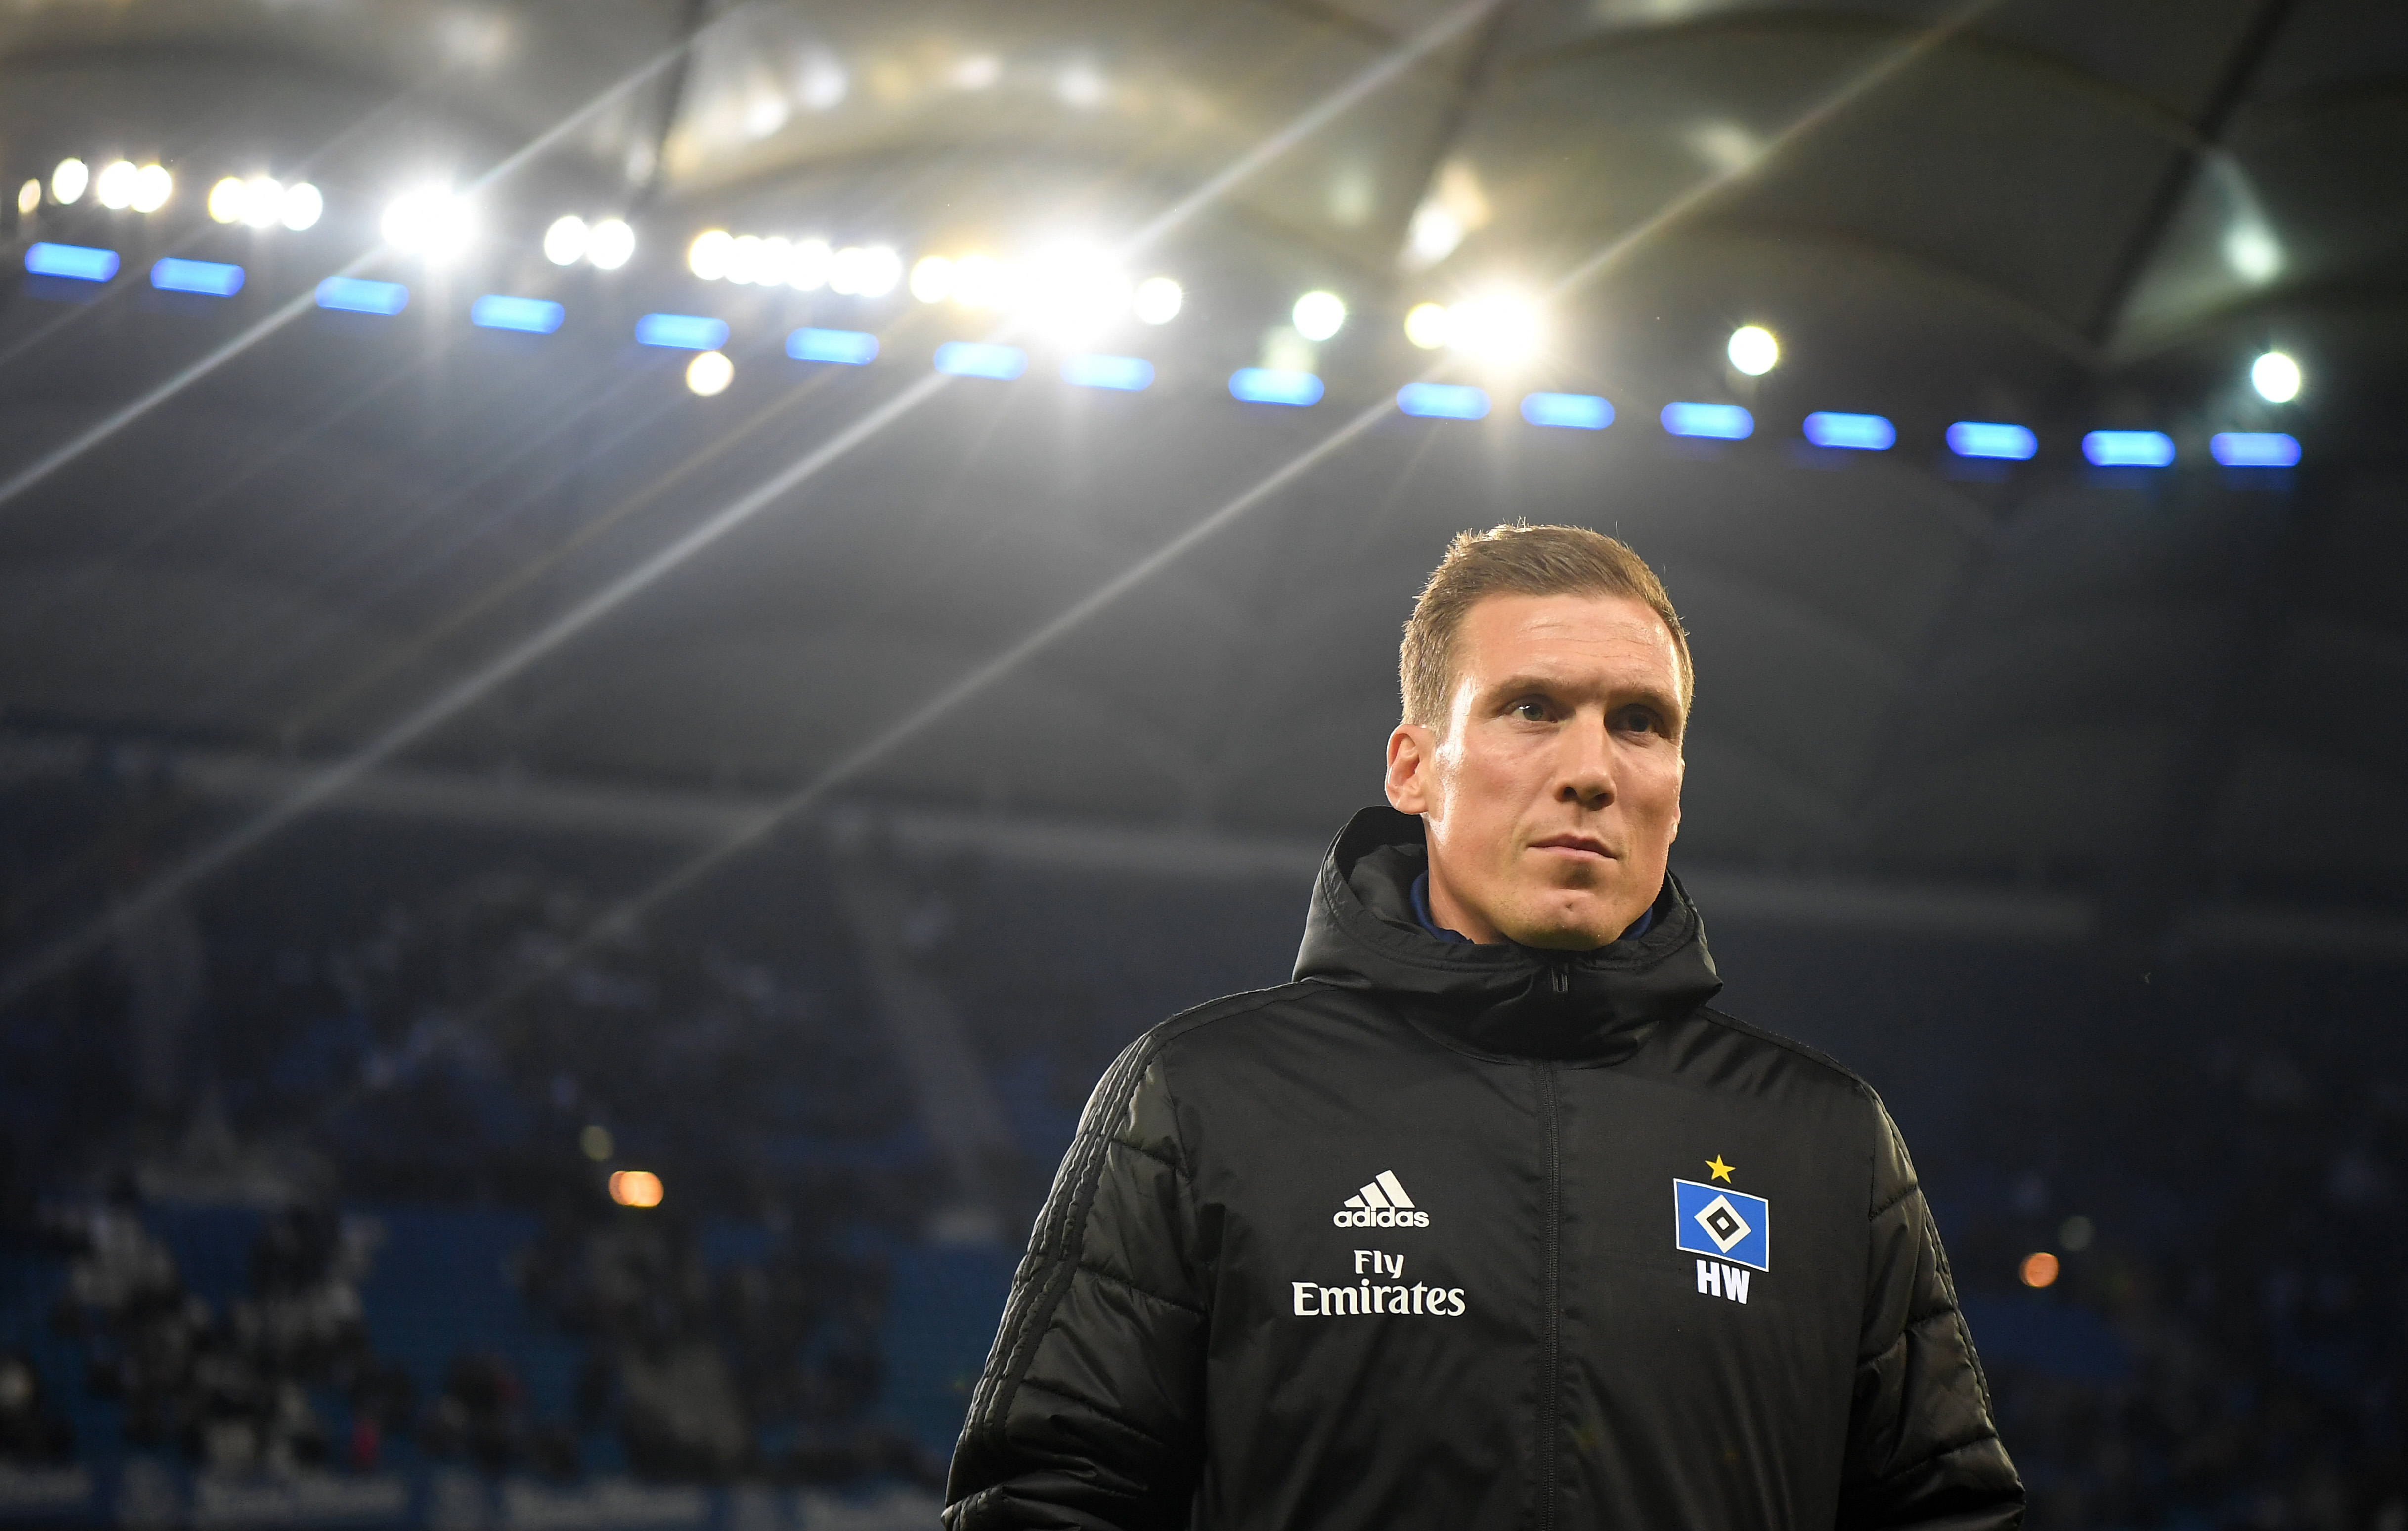 'It is a pity' - Genk boss Wolf discusses Belgian Pro League cancellation